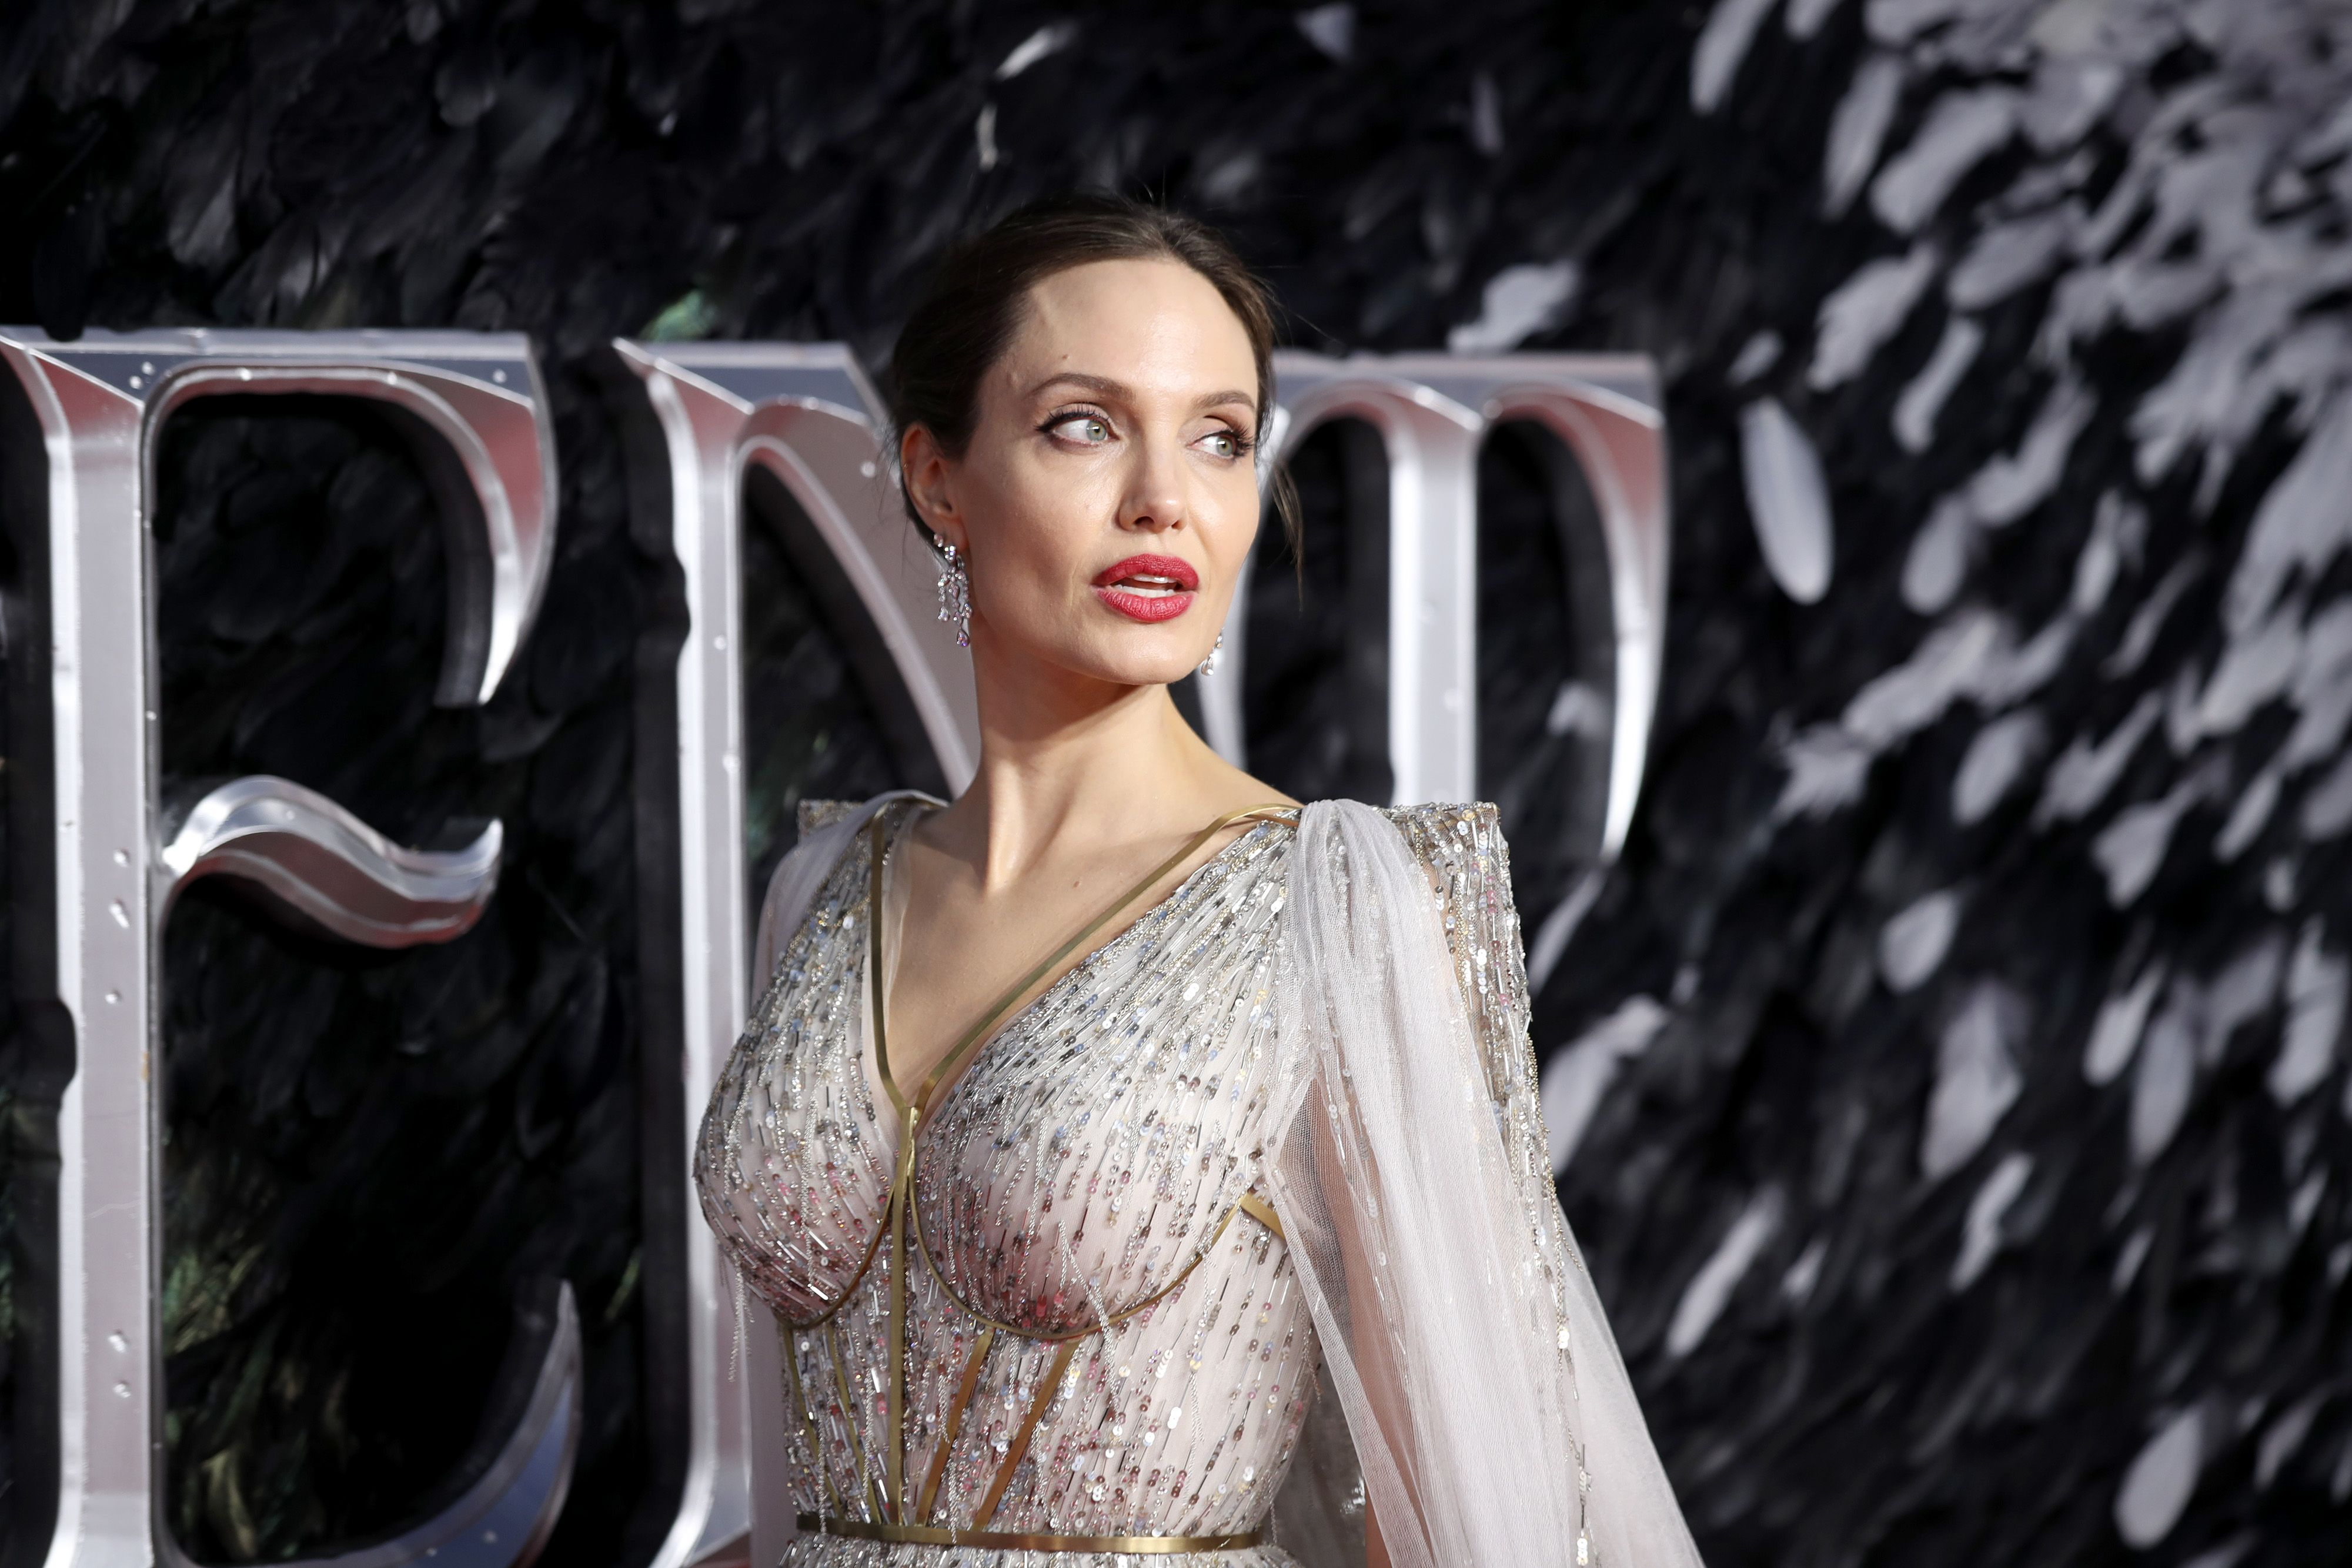 Angelina Jolie attends the Maleficent: Mistress of Evil European Premiere at the BFI Imax, Waterloo. (Photo by Gary Mitchell/SOPA Images/LightRocket via Getty Images)